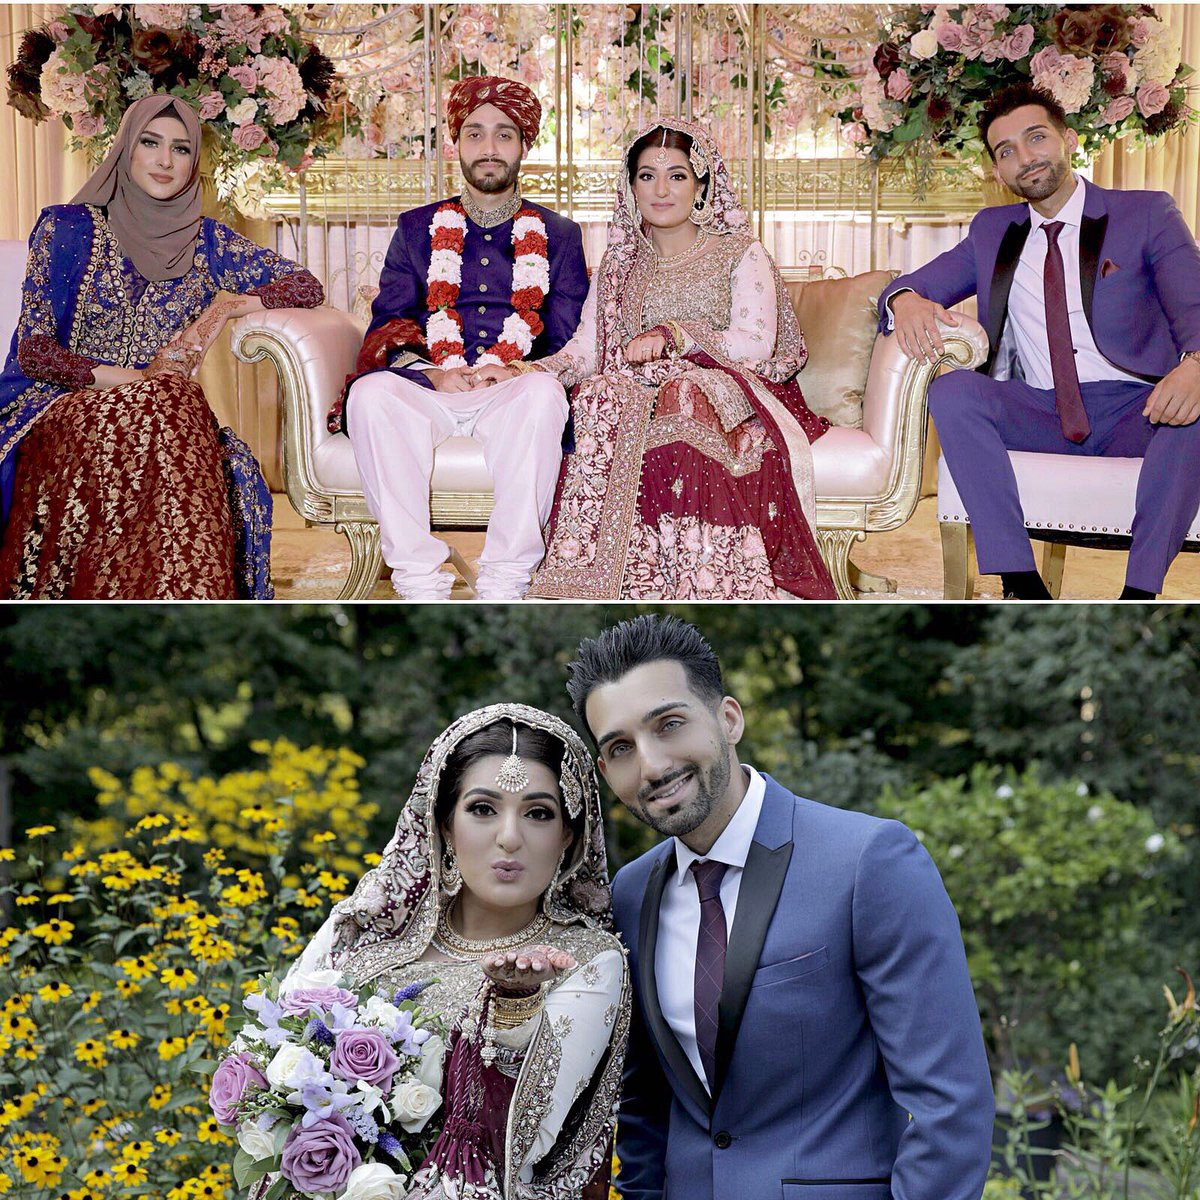 Sham Idrees On Twitter My Beautiful Sister All Grown Up And Married Congrats Anoosh And Sarim May Allah Bless Your Marriage Our Prayers Are Always With You Say Mashaa Allah Https T Co Mqfelborsn